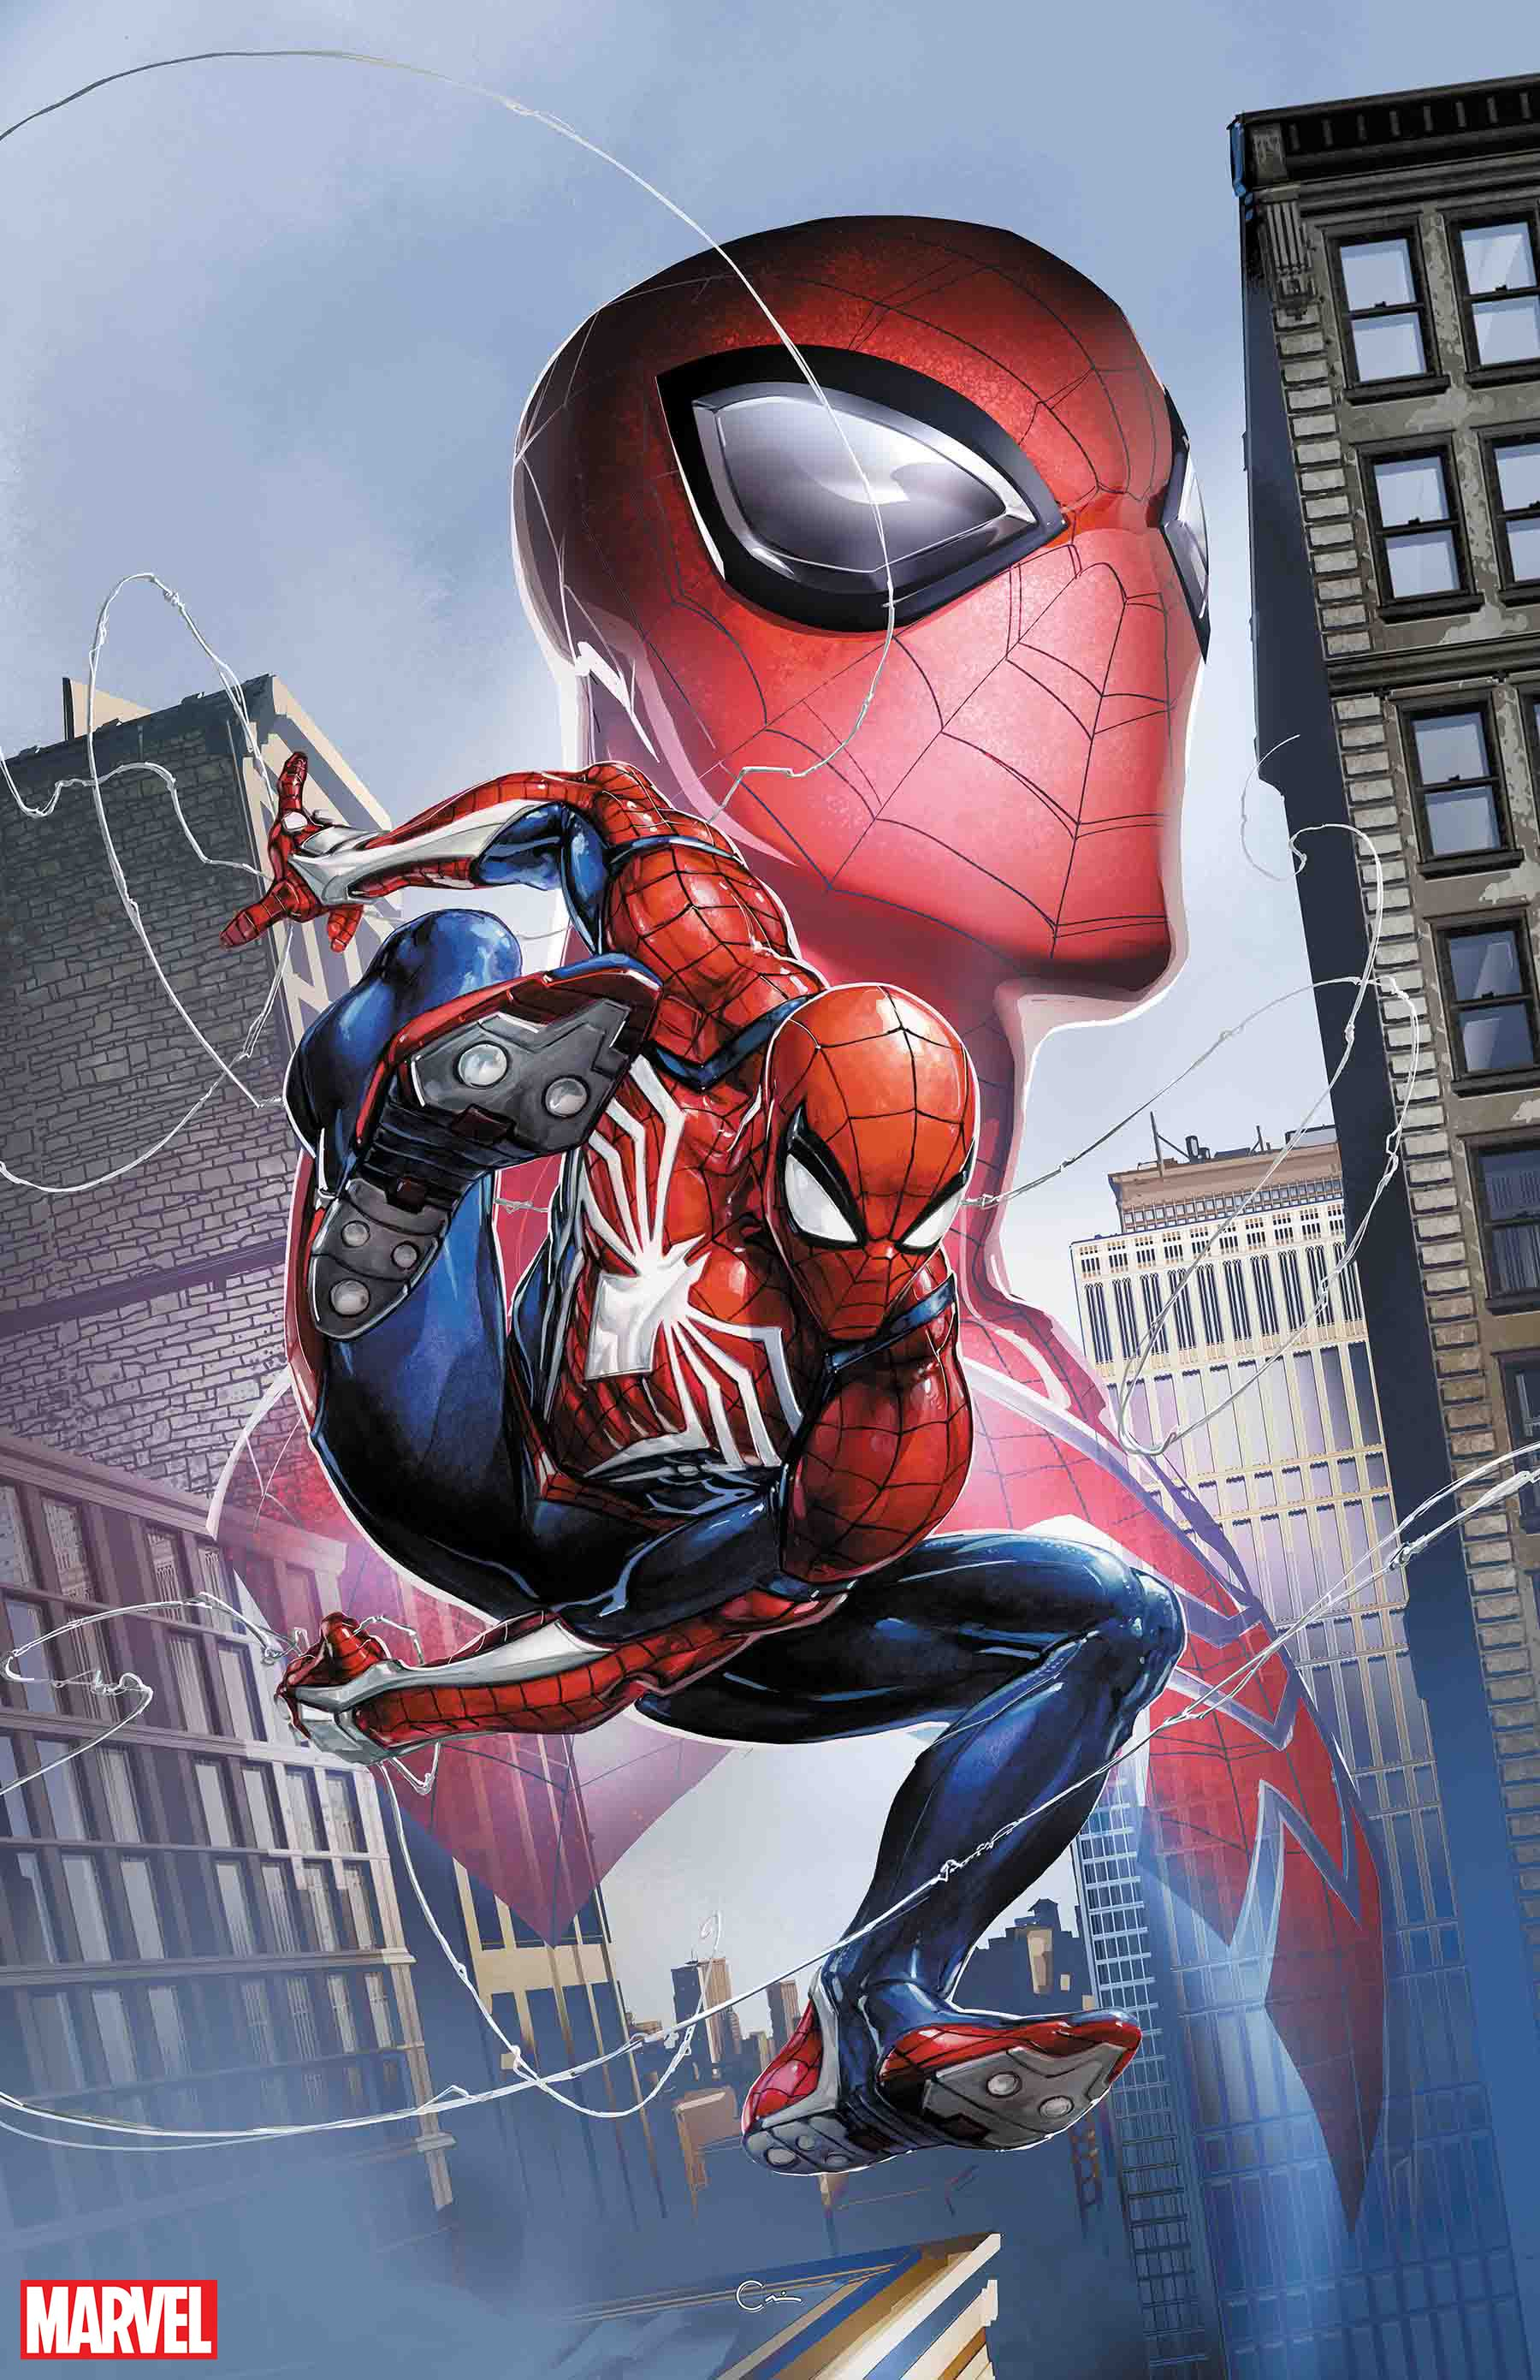 Insomniac Games' PS4 Spider-Man will join Marvel Comics